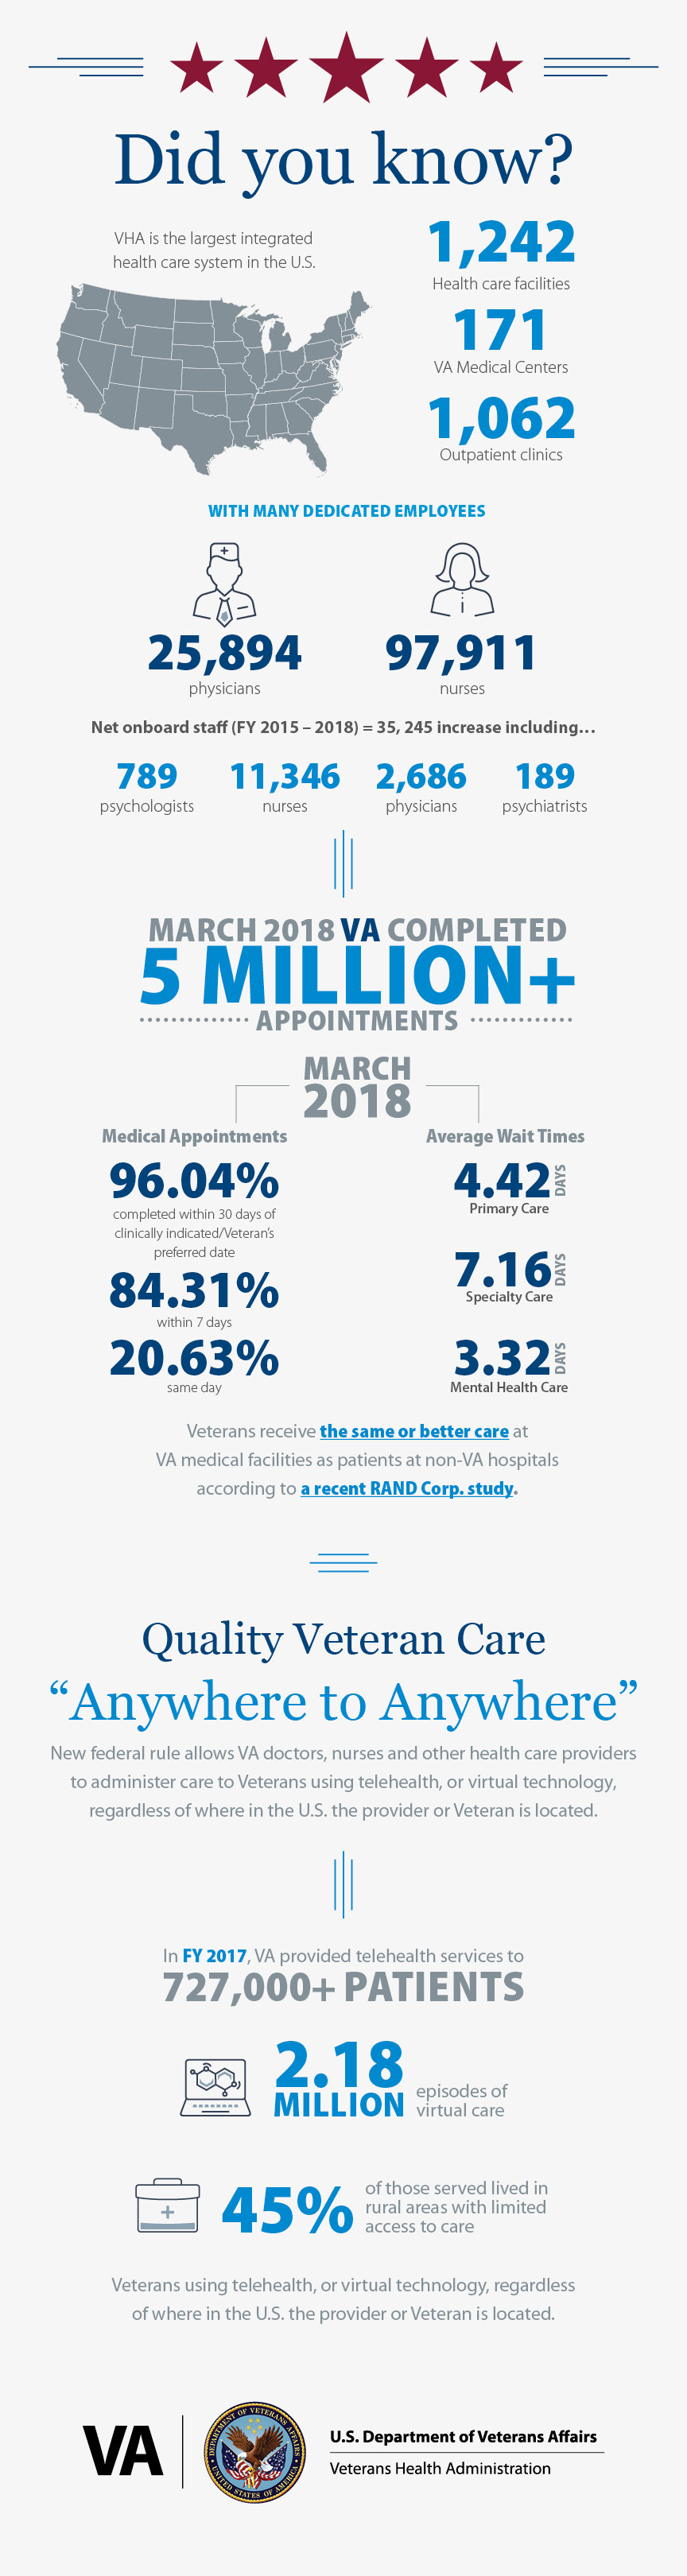 Veterans Health Administration by the numbers